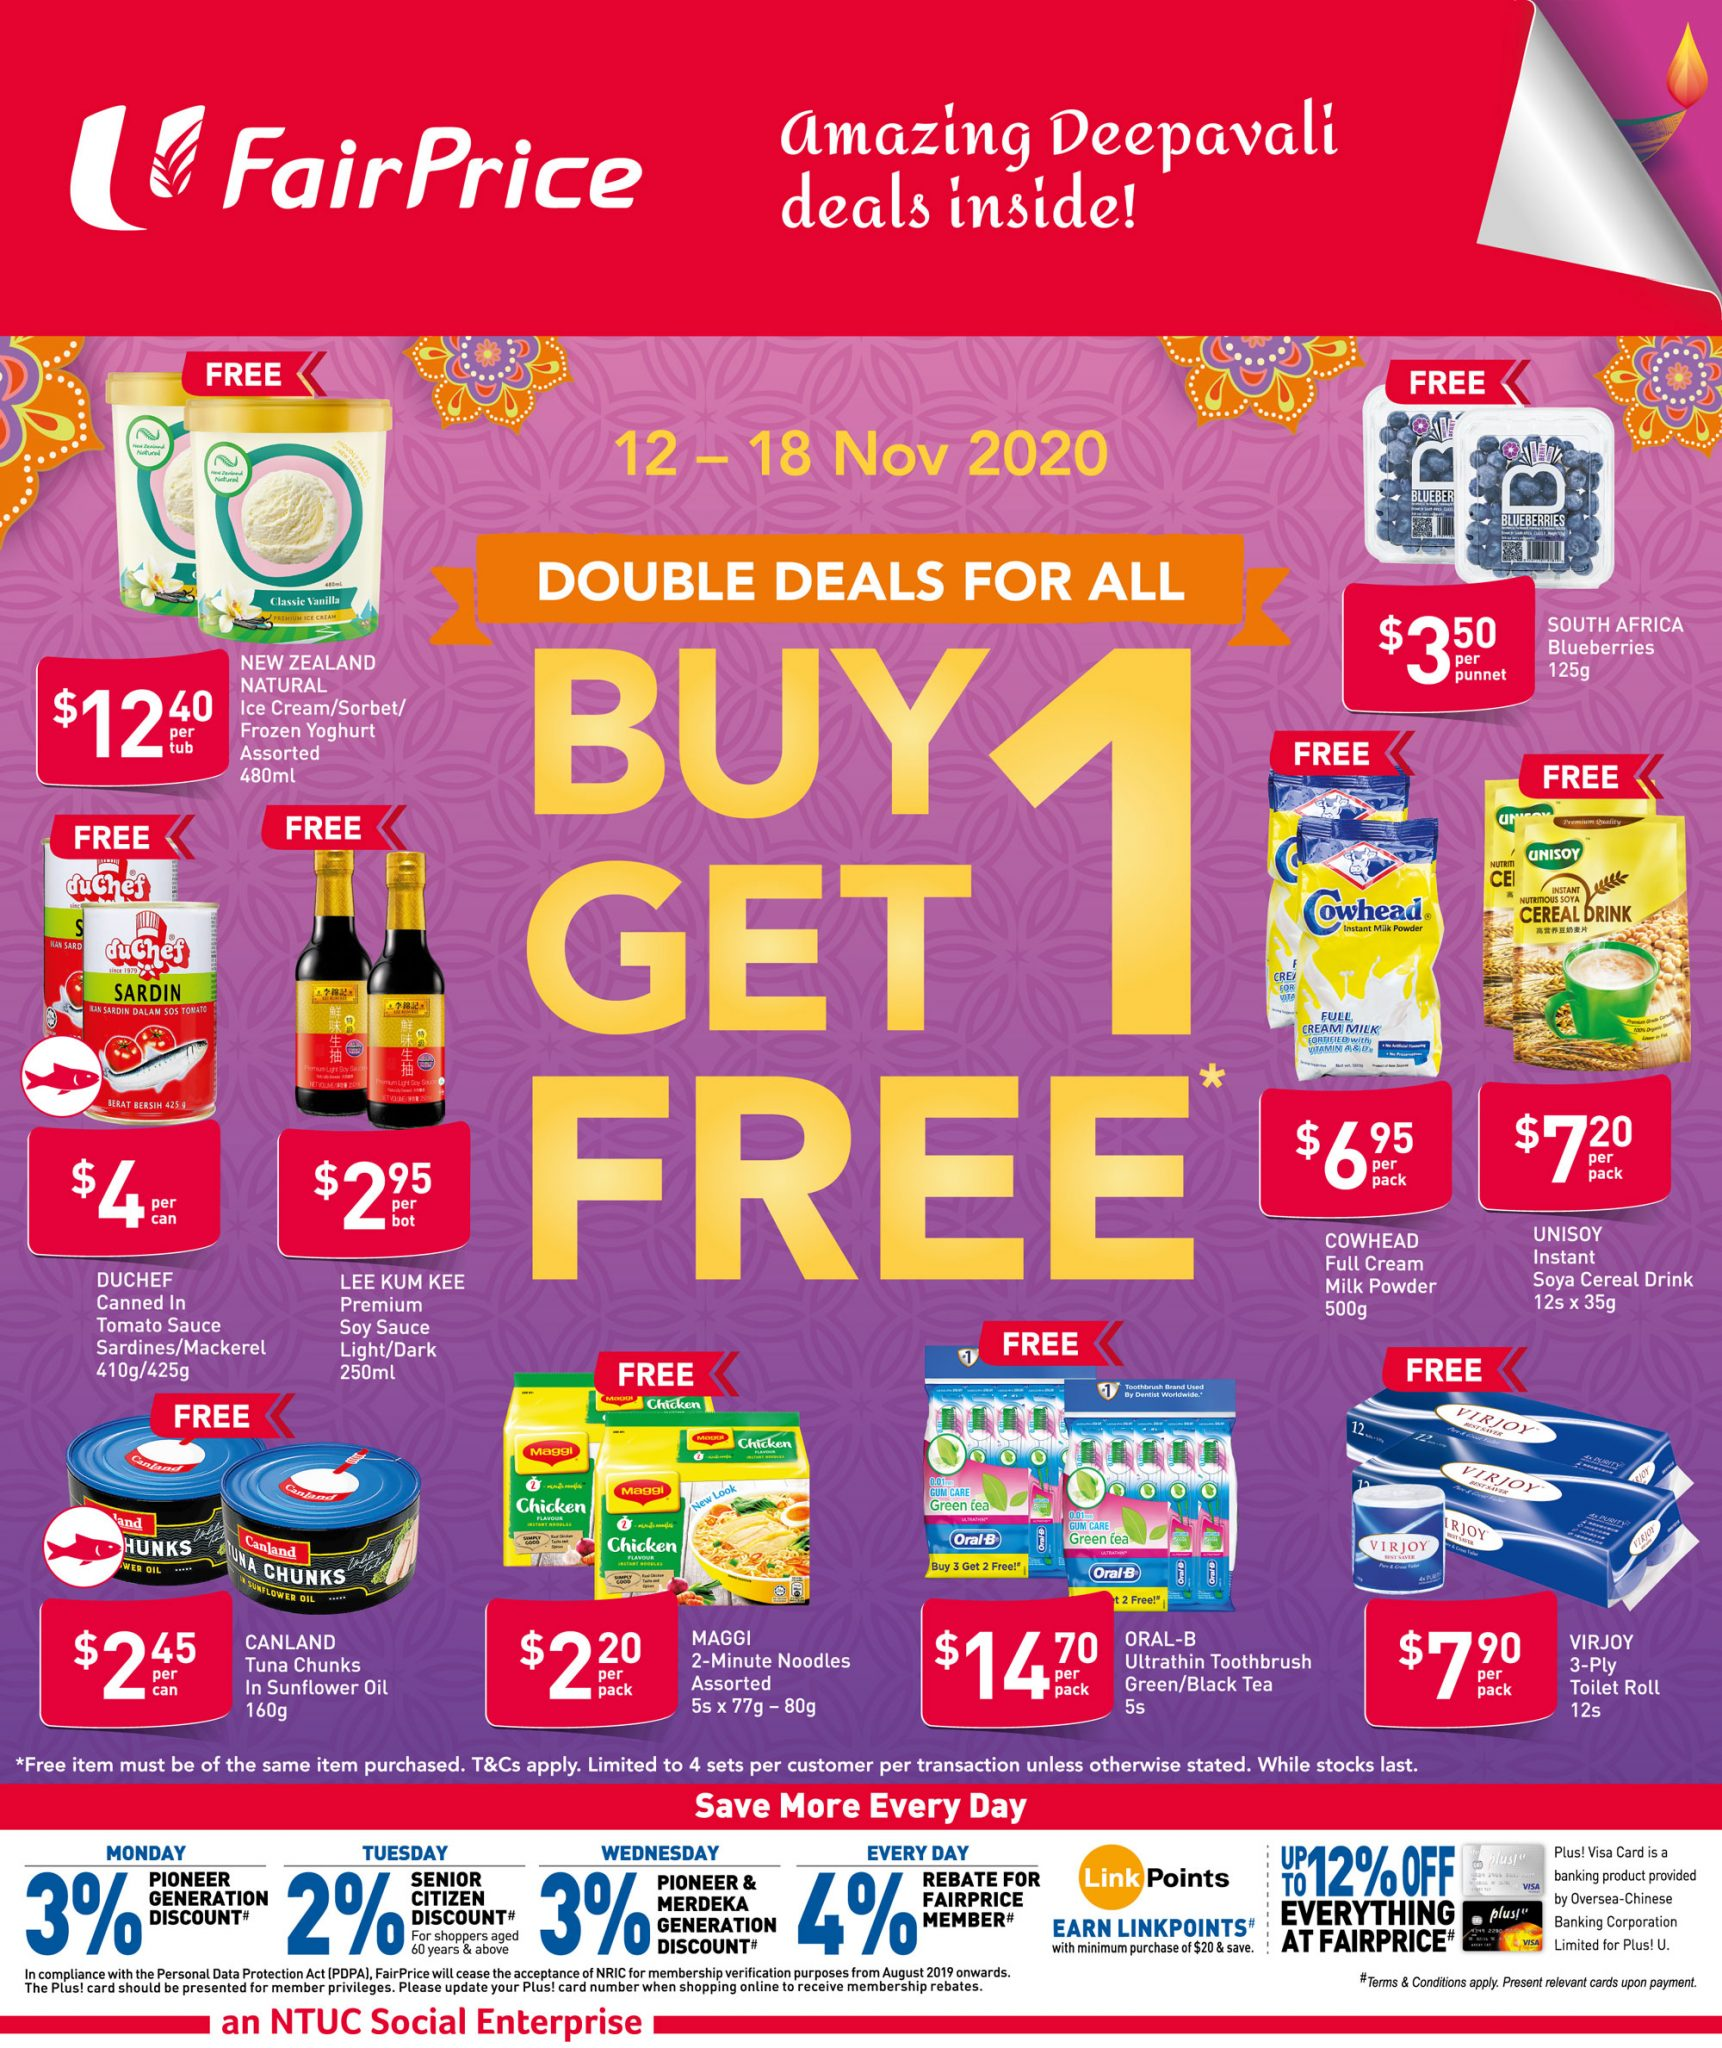 FairPrice buy-1-get-1-free deals from now till 18 November 2020